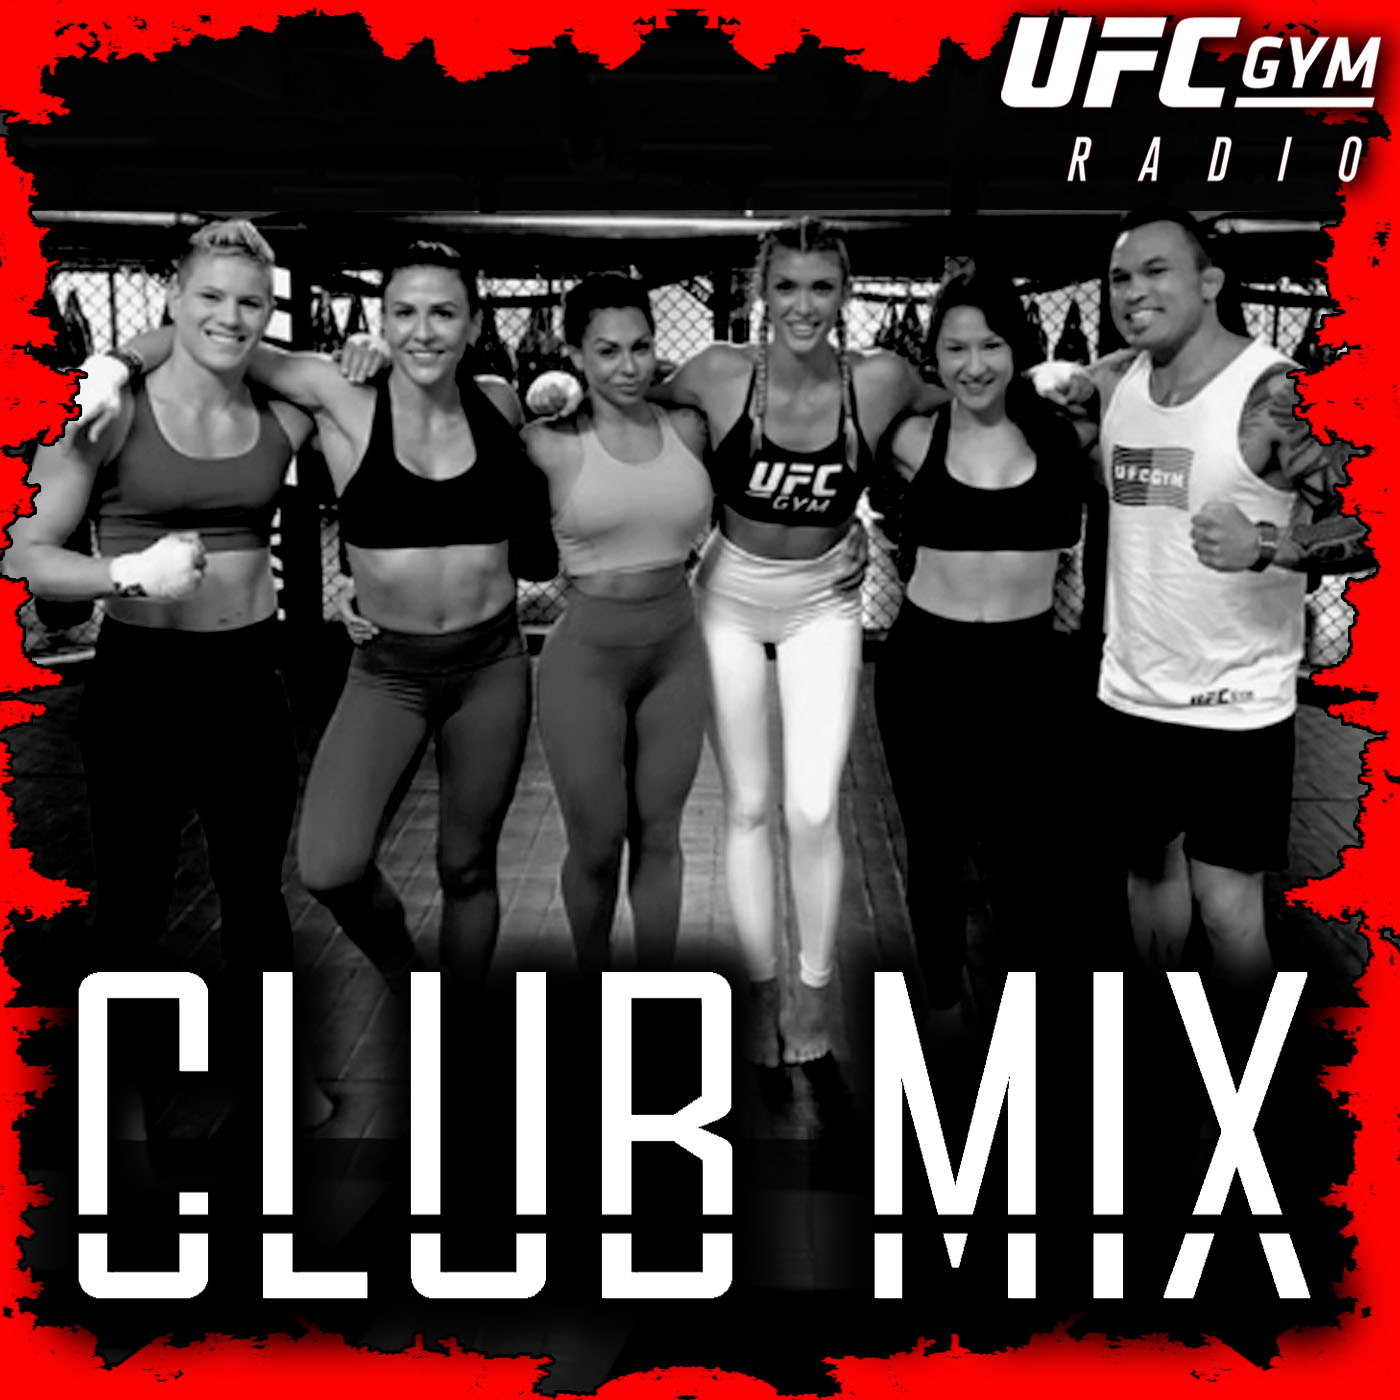 UFC GYM RADIO 439 - The Club Mix